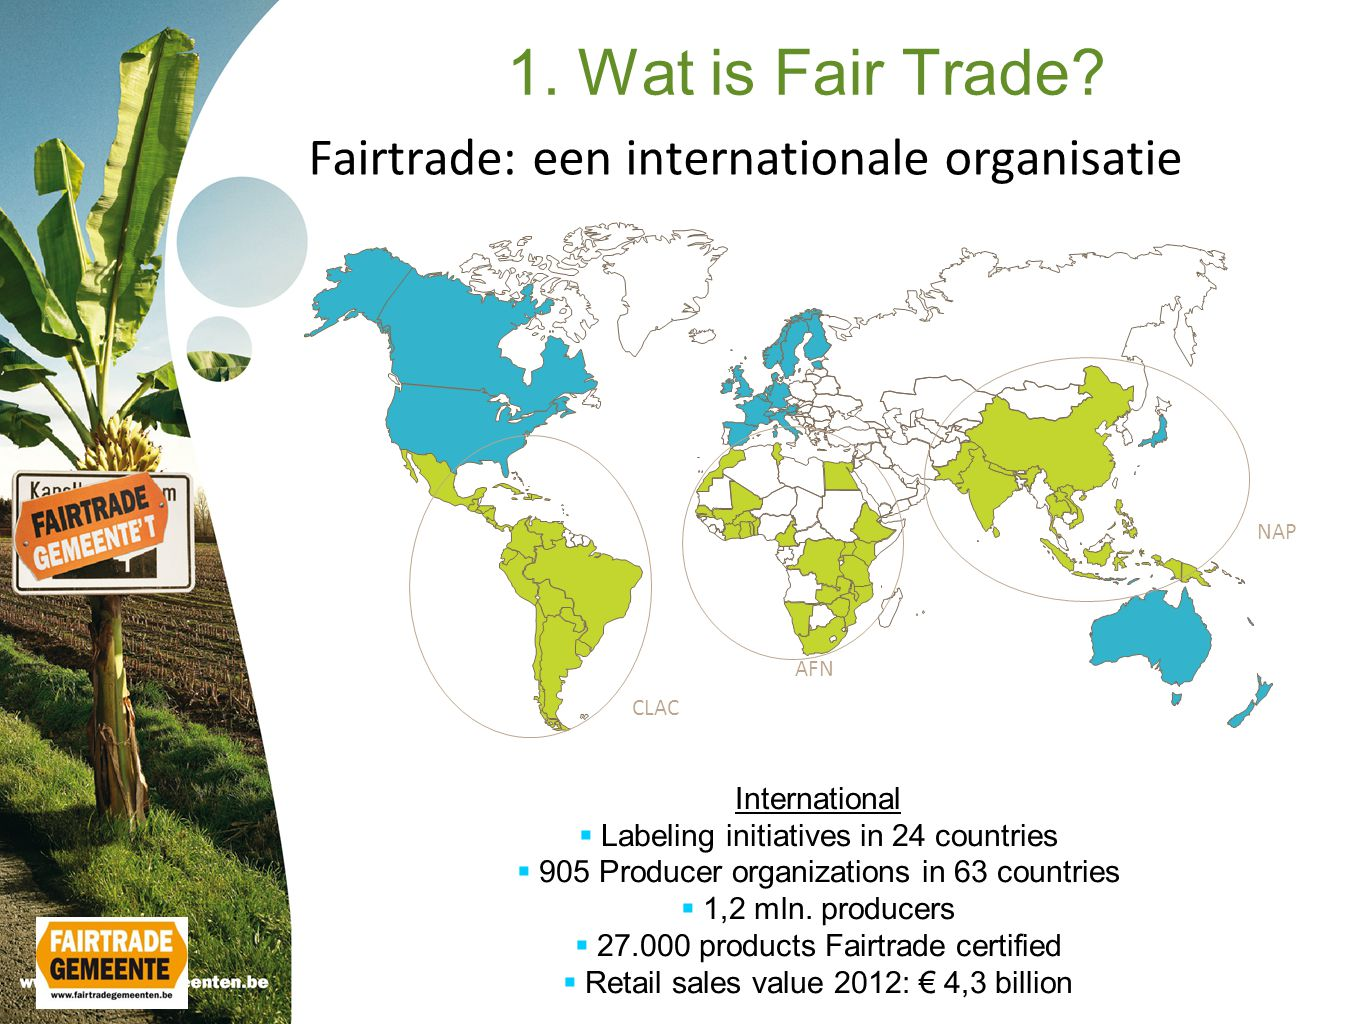 Fairtrade: een internationale organisatie